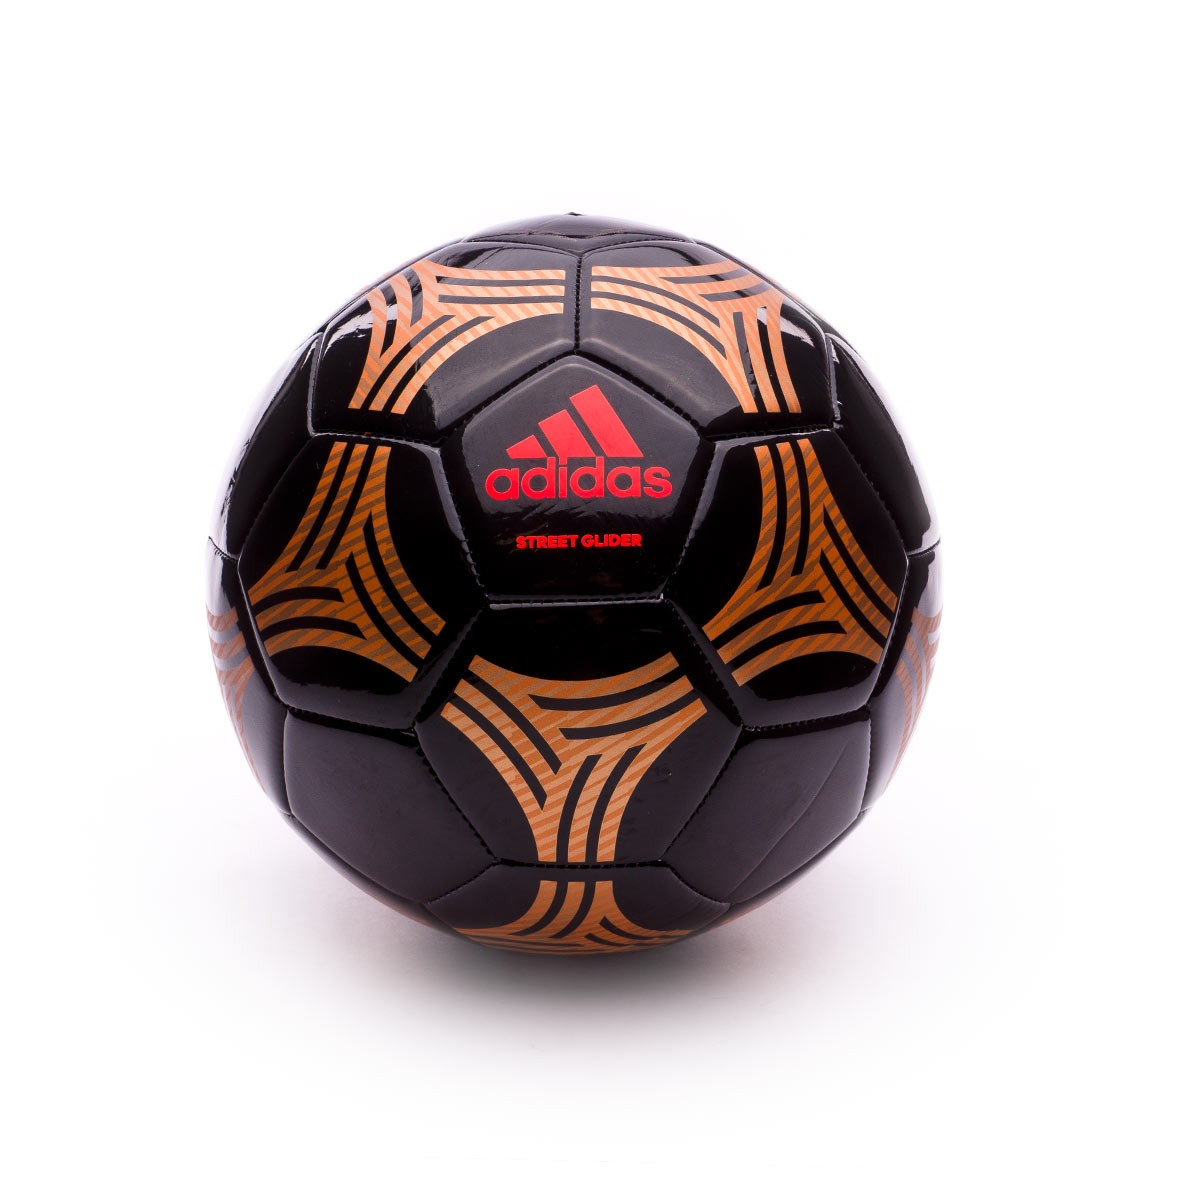 Ball adidas Tango Street Glider Black-Gold-Solar red - Football ... 5913f4cac0530